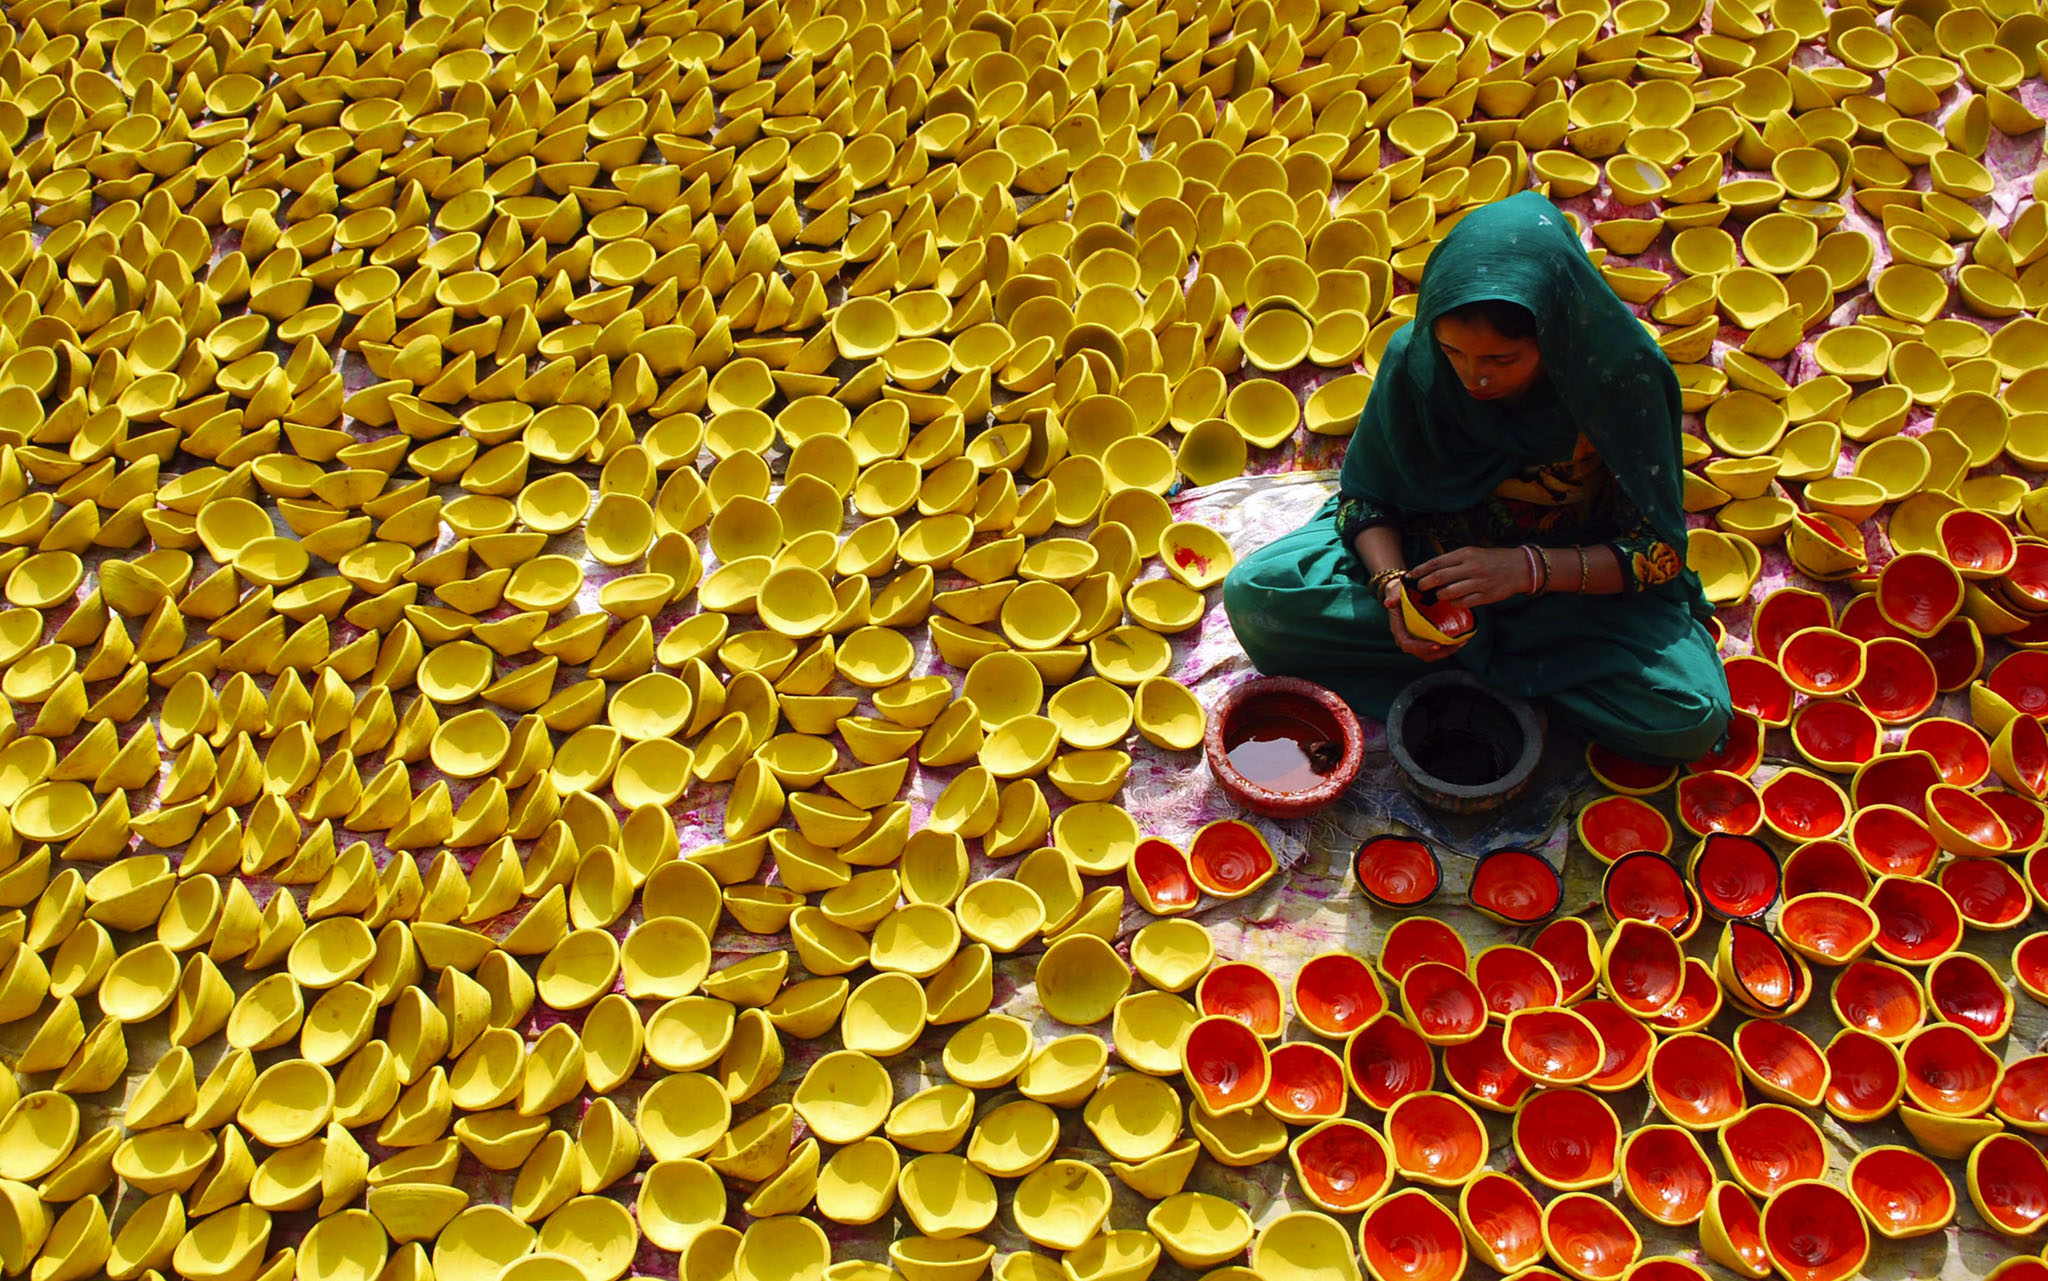 An Indian potter paints earthenware lamps ahead of Diwali, or the Hindu festival of lights, in Amritsar, India. Hindus light lamps, wear new clothes, exchange sweets and gifts and pray to goddess Lakshmi during the festival.